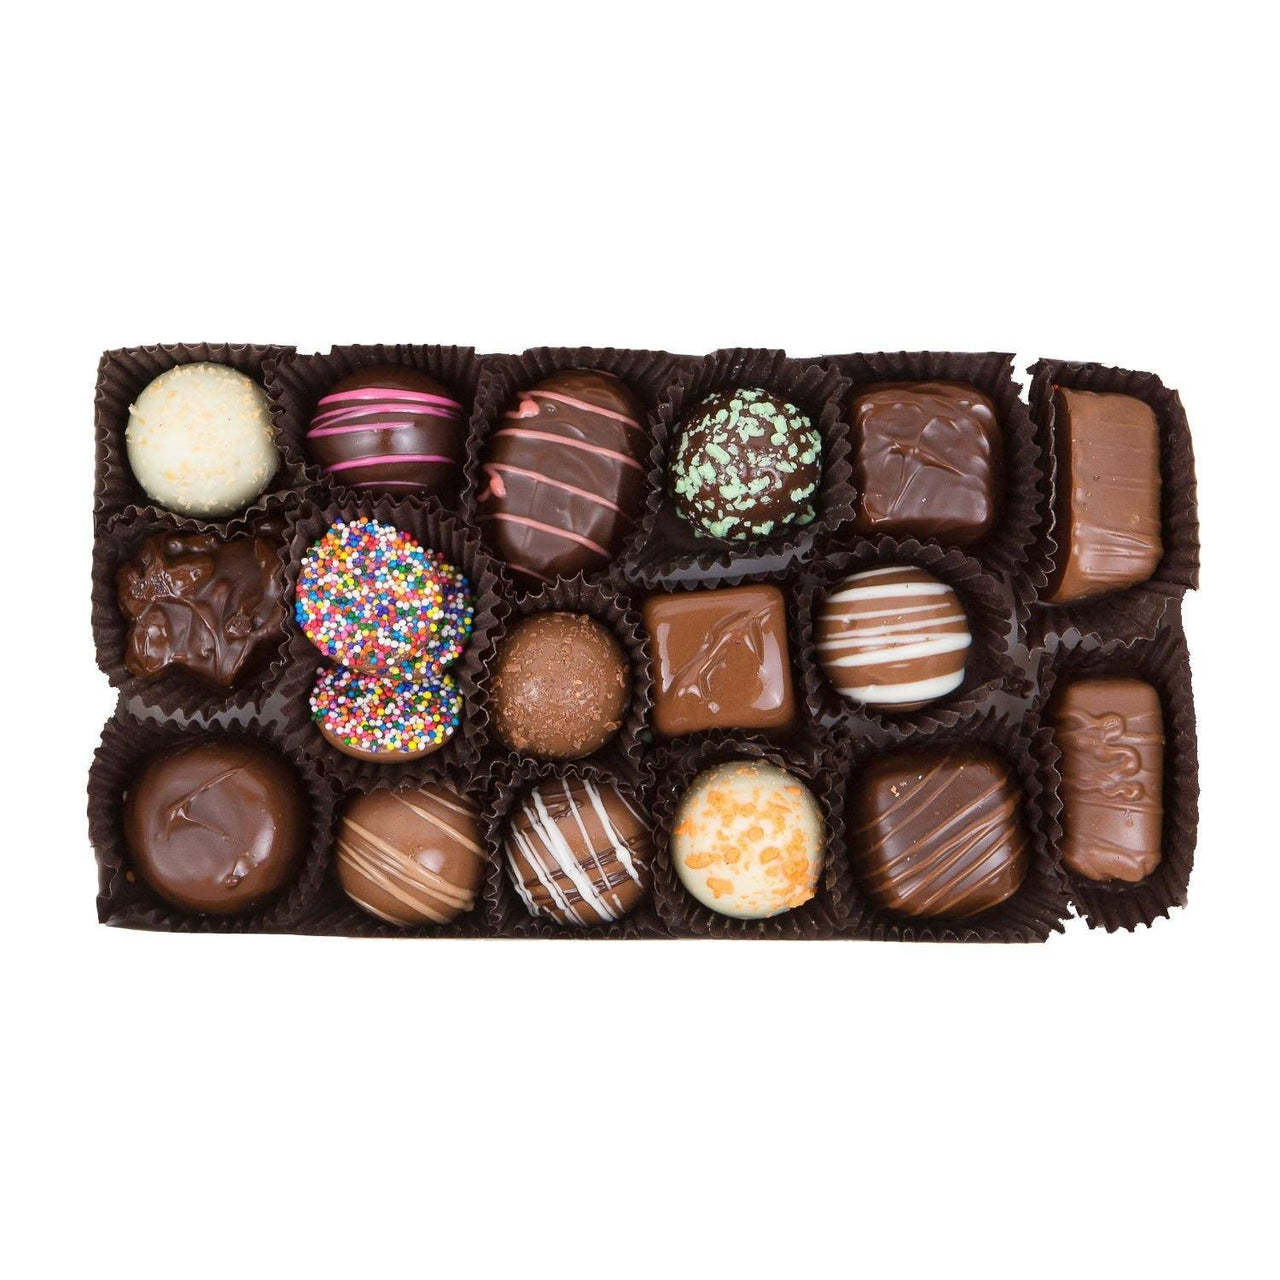 Good White Elephant Gifts  - Chocolate Assortment Gift Box - Jackie's Chocolate (4336484515955)